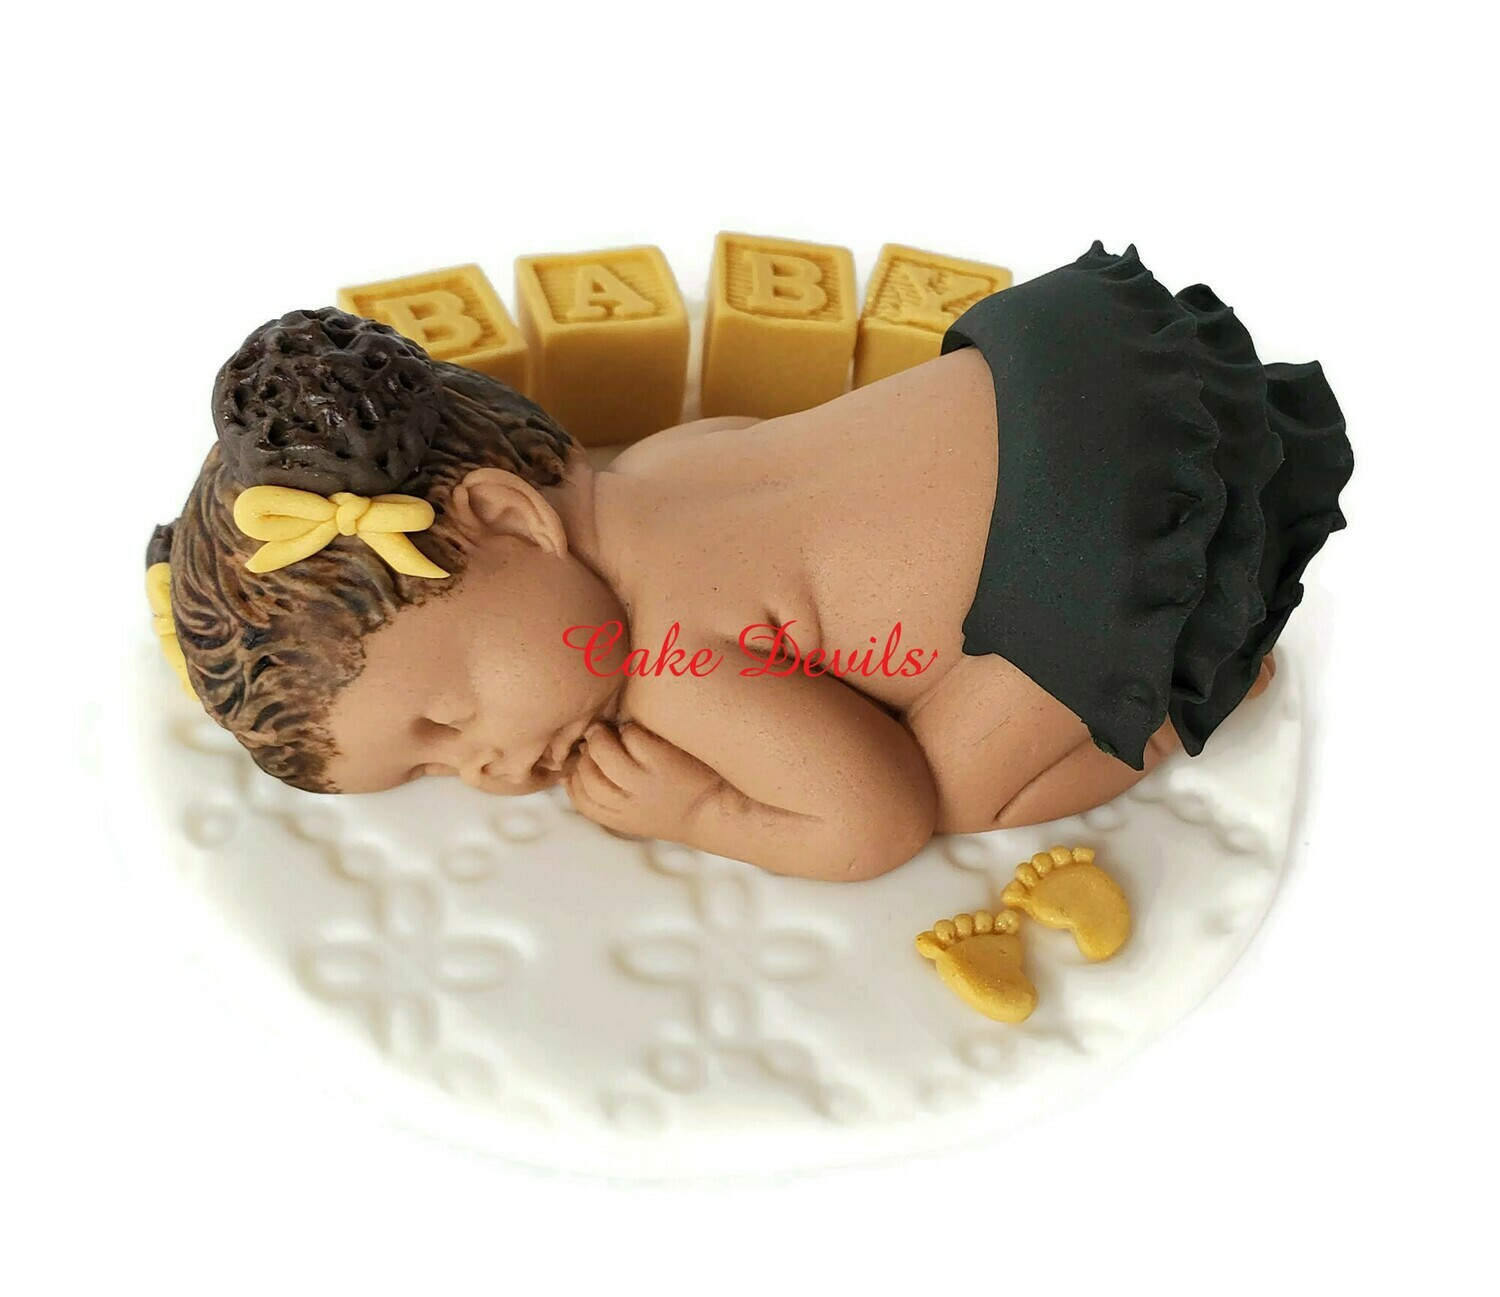 Fondant Baby Girl with Pigtail / Puff Hair Baby Shower Cake Topper, Fondant Baby Blocks and Feet, black and gold color theme shower!